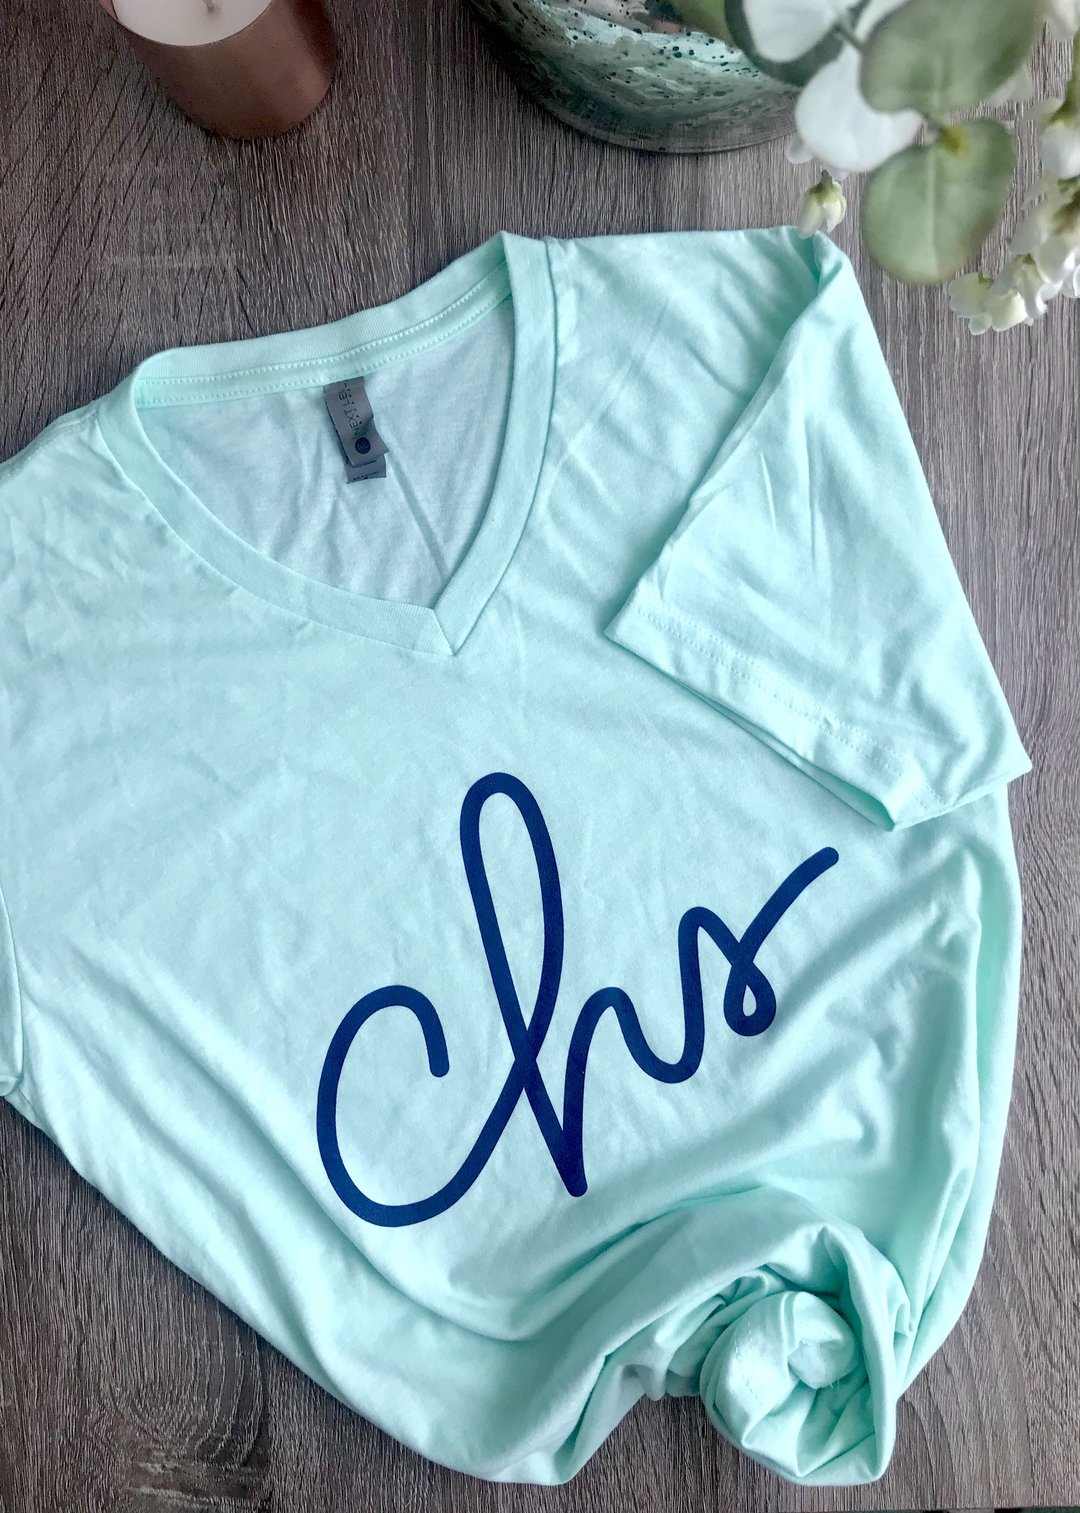 Charleston Gift Ideas - chs t shirt